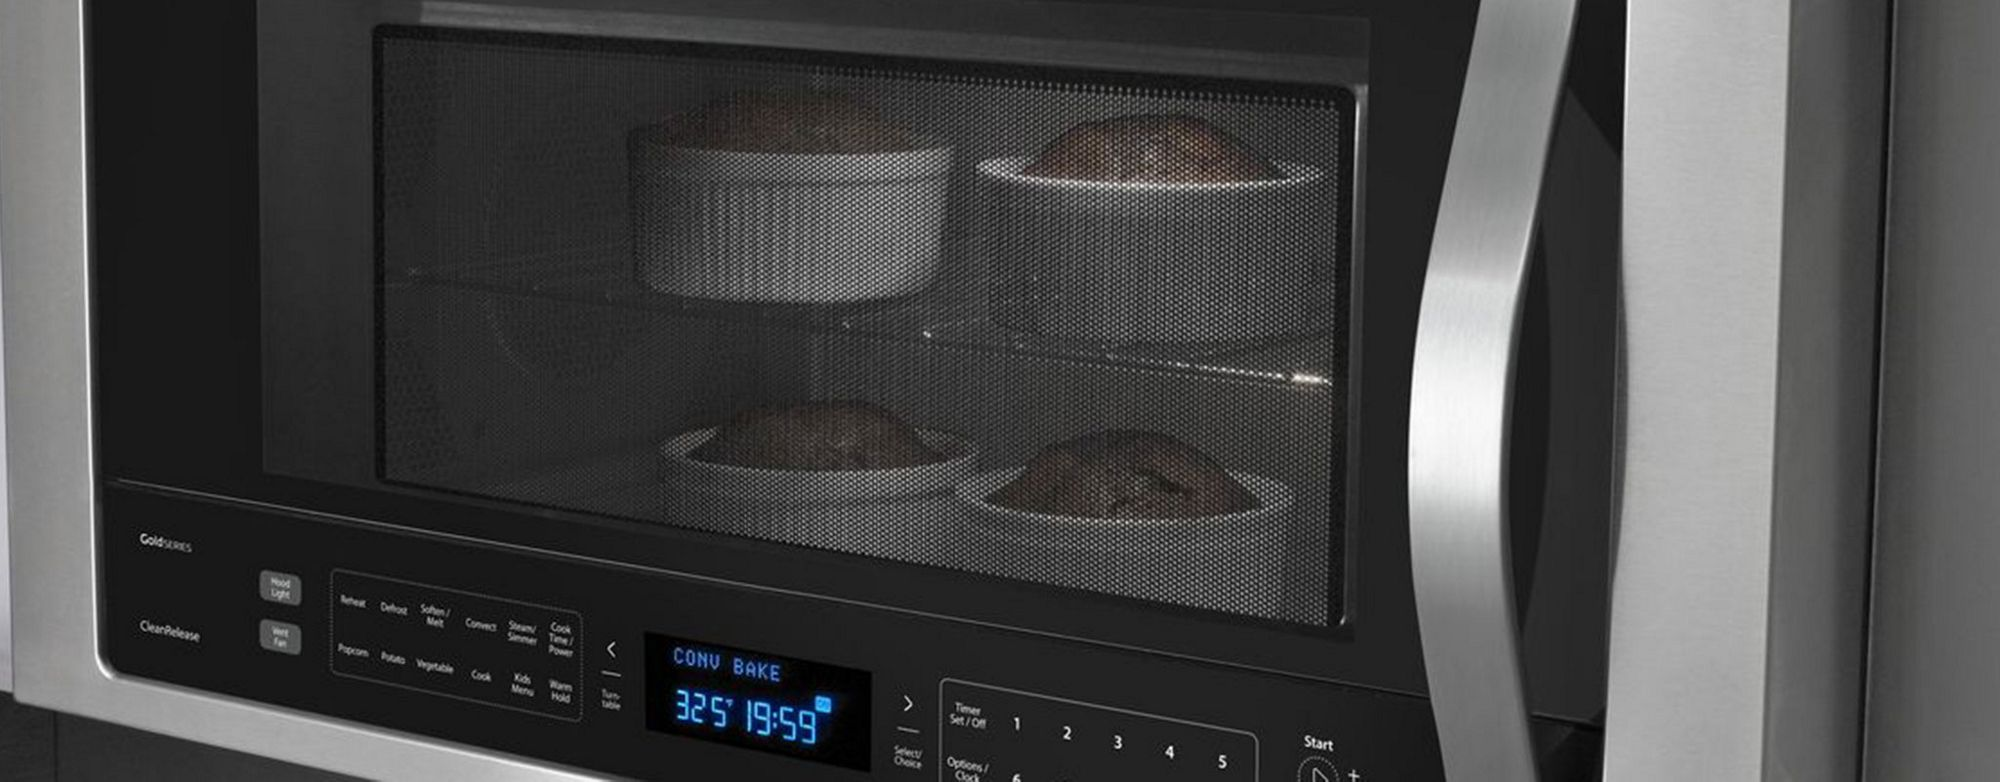 Do More Than Heat Up Leftovers With Convection Microwaves From Whirlpool